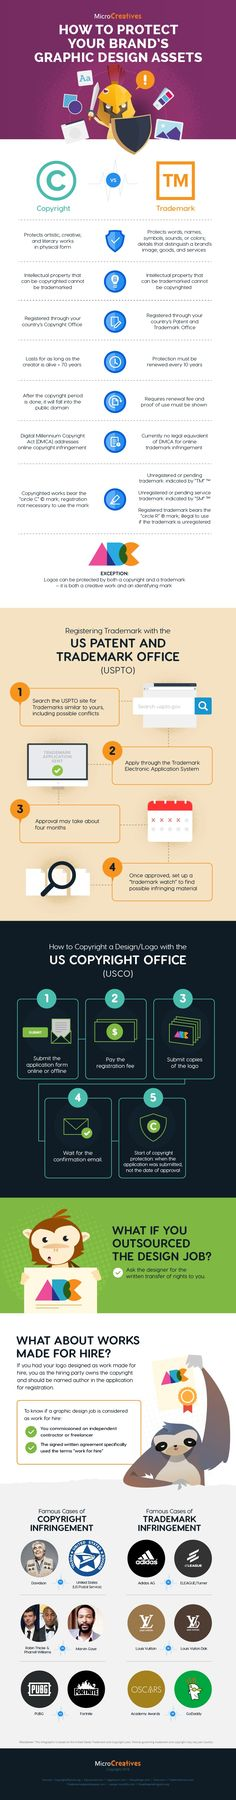 Corporate logos may qualify for both copyright and trademark. However, they protect different aspects of your brand assets. So, which one should you apply for? Business Infographics, Business Tips, Corporate Logos, Work For Hire, Brand Assets, How To Protect Yourself, Make And Sell, Slogan, Investing